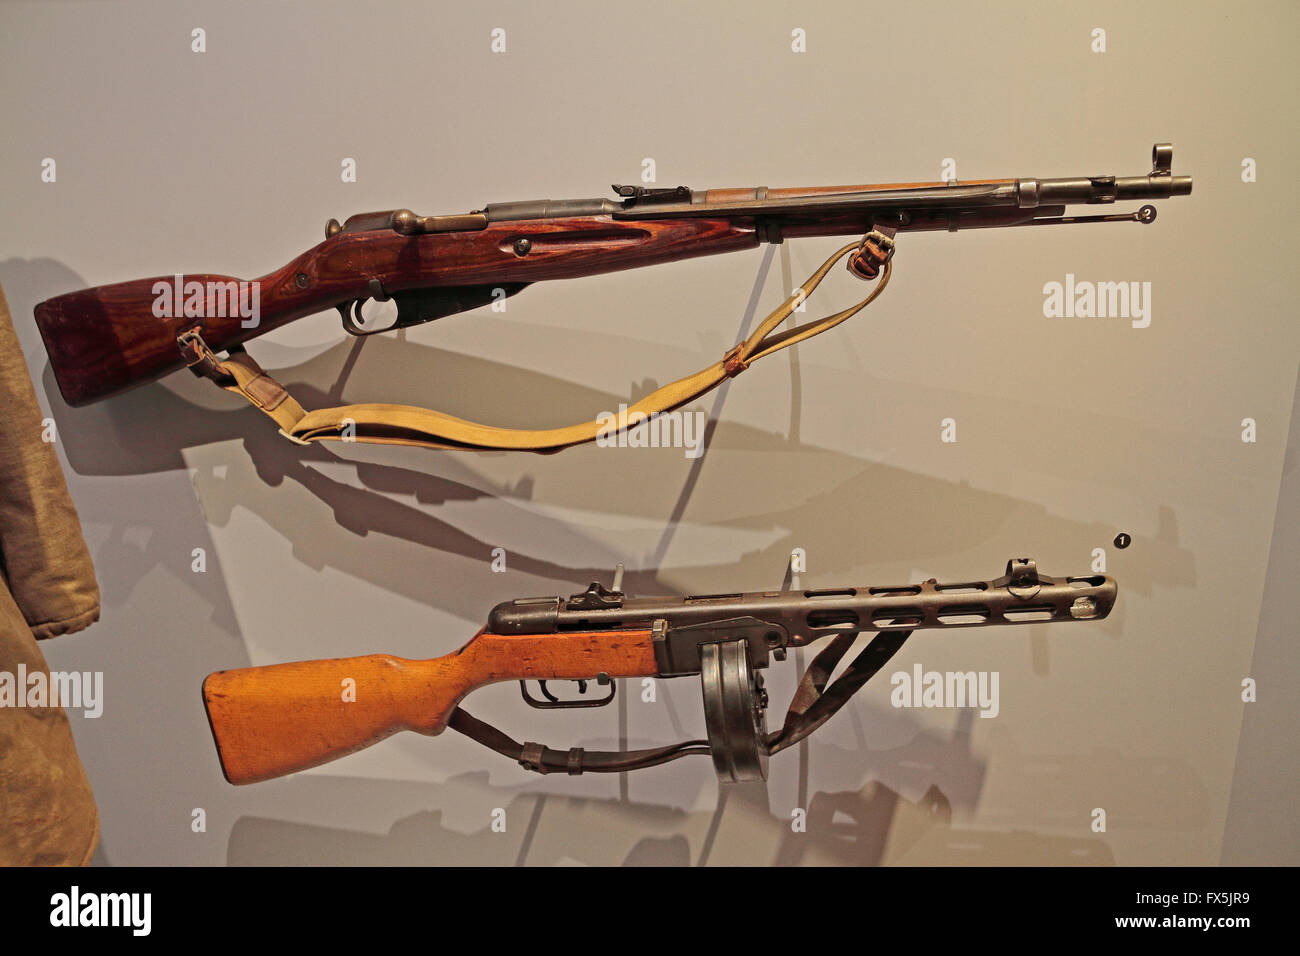 Weapons Of War Stock Photos Images Alamy Net Mosin Nagant Schematic Get Free Image About Wiring Diagram Russian Wwii M1944 Top And Ppshim1941 Bottom In